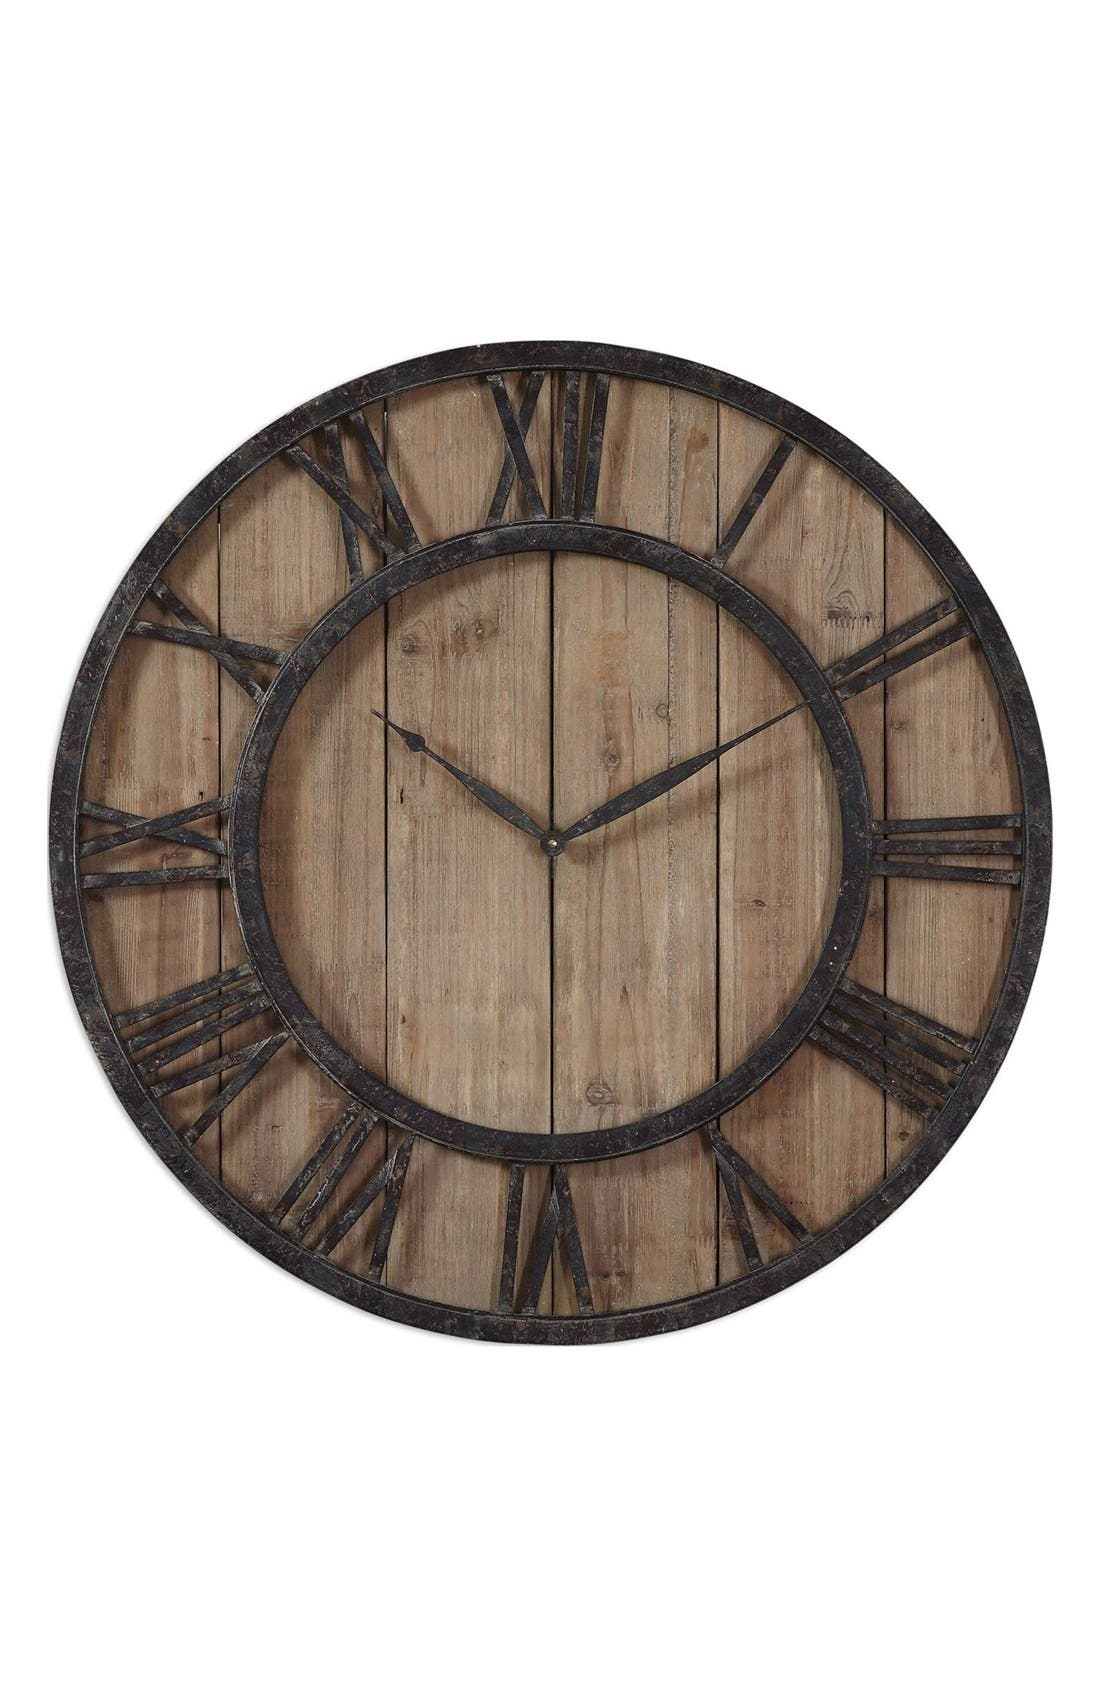 Main Image - Uttermost 'Powell' Wooden Wall Clock